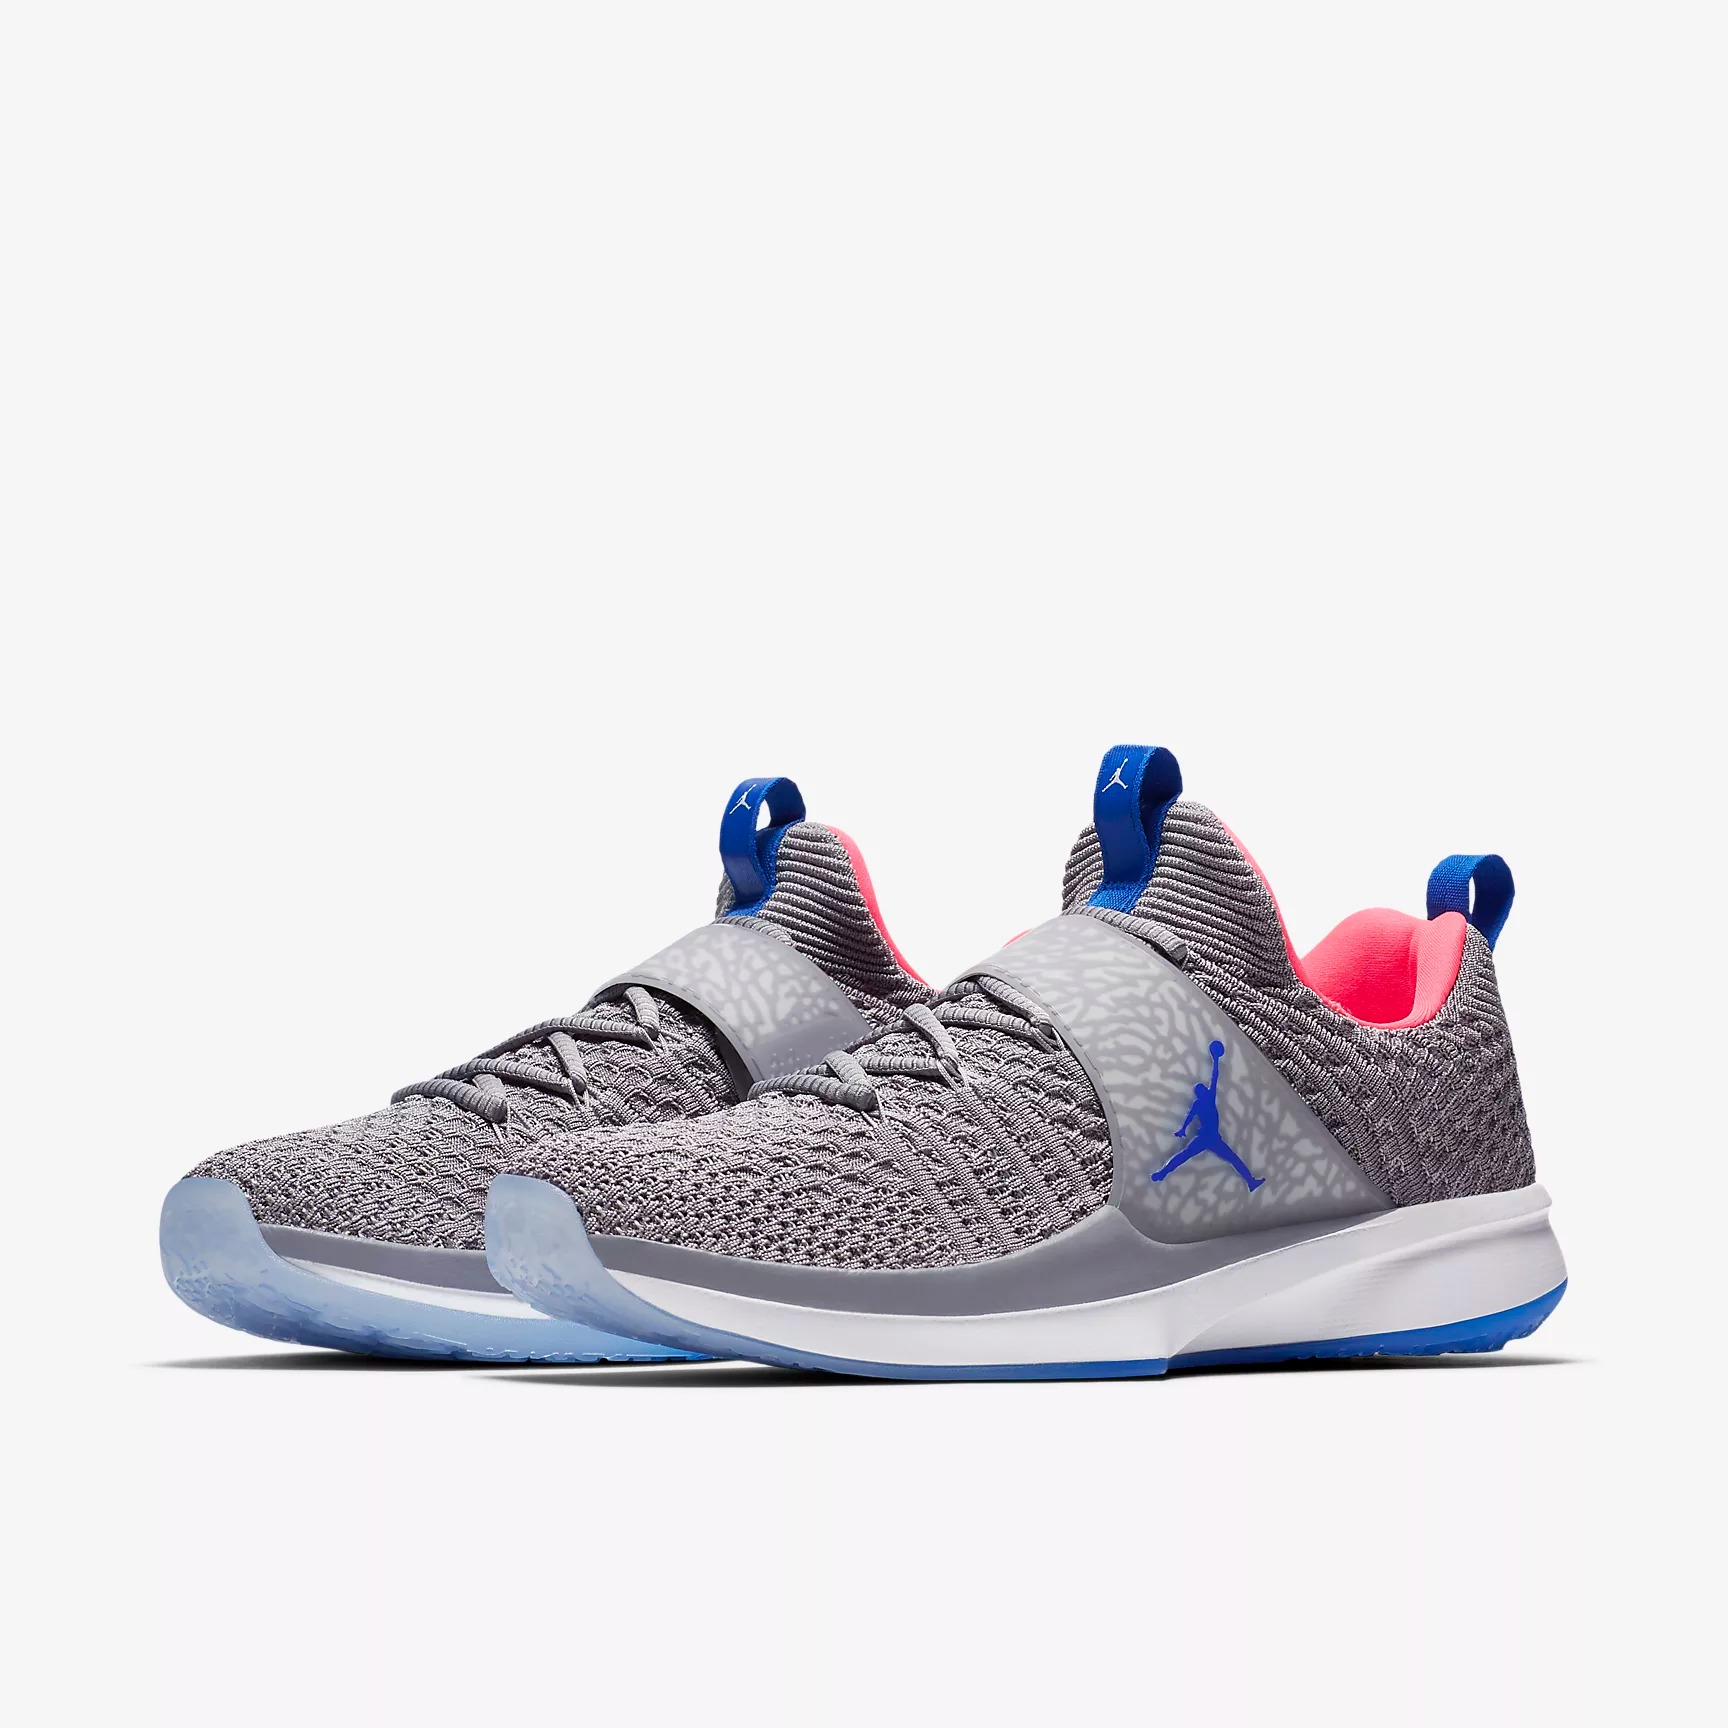 8476f4ac9ab8 Jordan Trainer 2 Flyknit Training Shoes - SPORT SHOES TRAINING SHOES -  Superfanas.lt